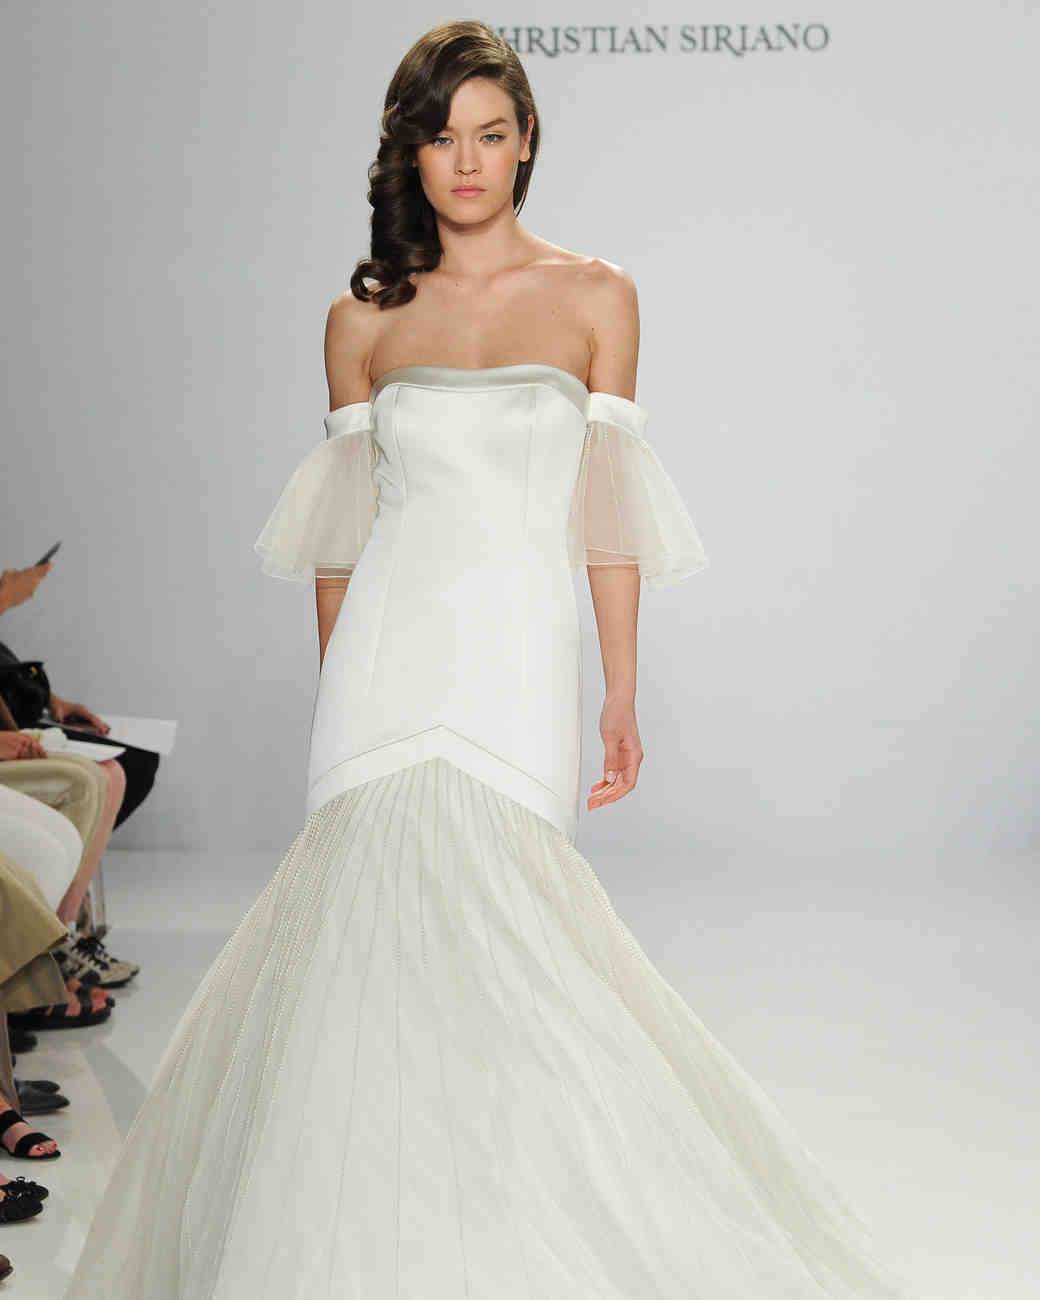 Christian Siriano Tulle Trumpet Gown